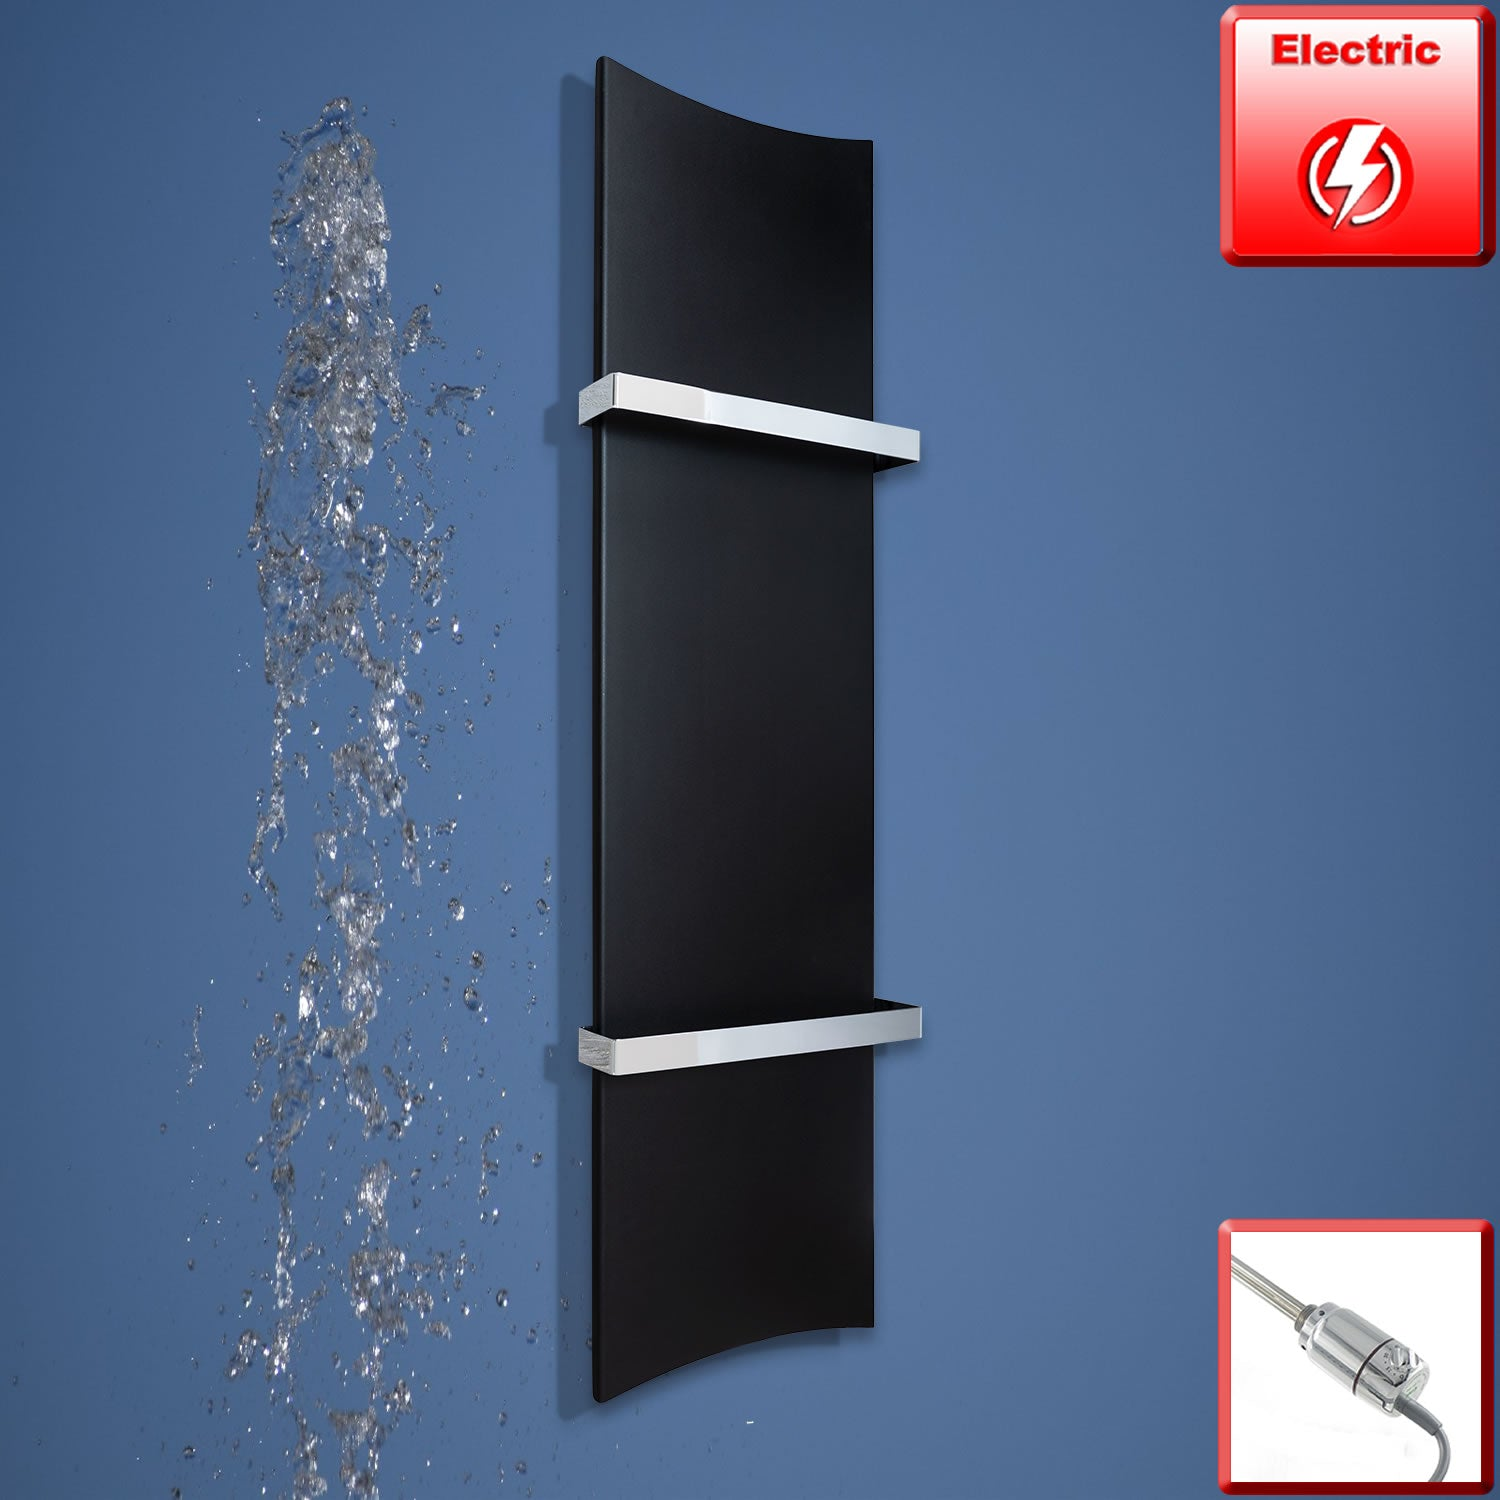 300mm Wide 1200mm High Black Designer Heated Towel Rail Radiator Bone Style,Electric with Thermostatic Element